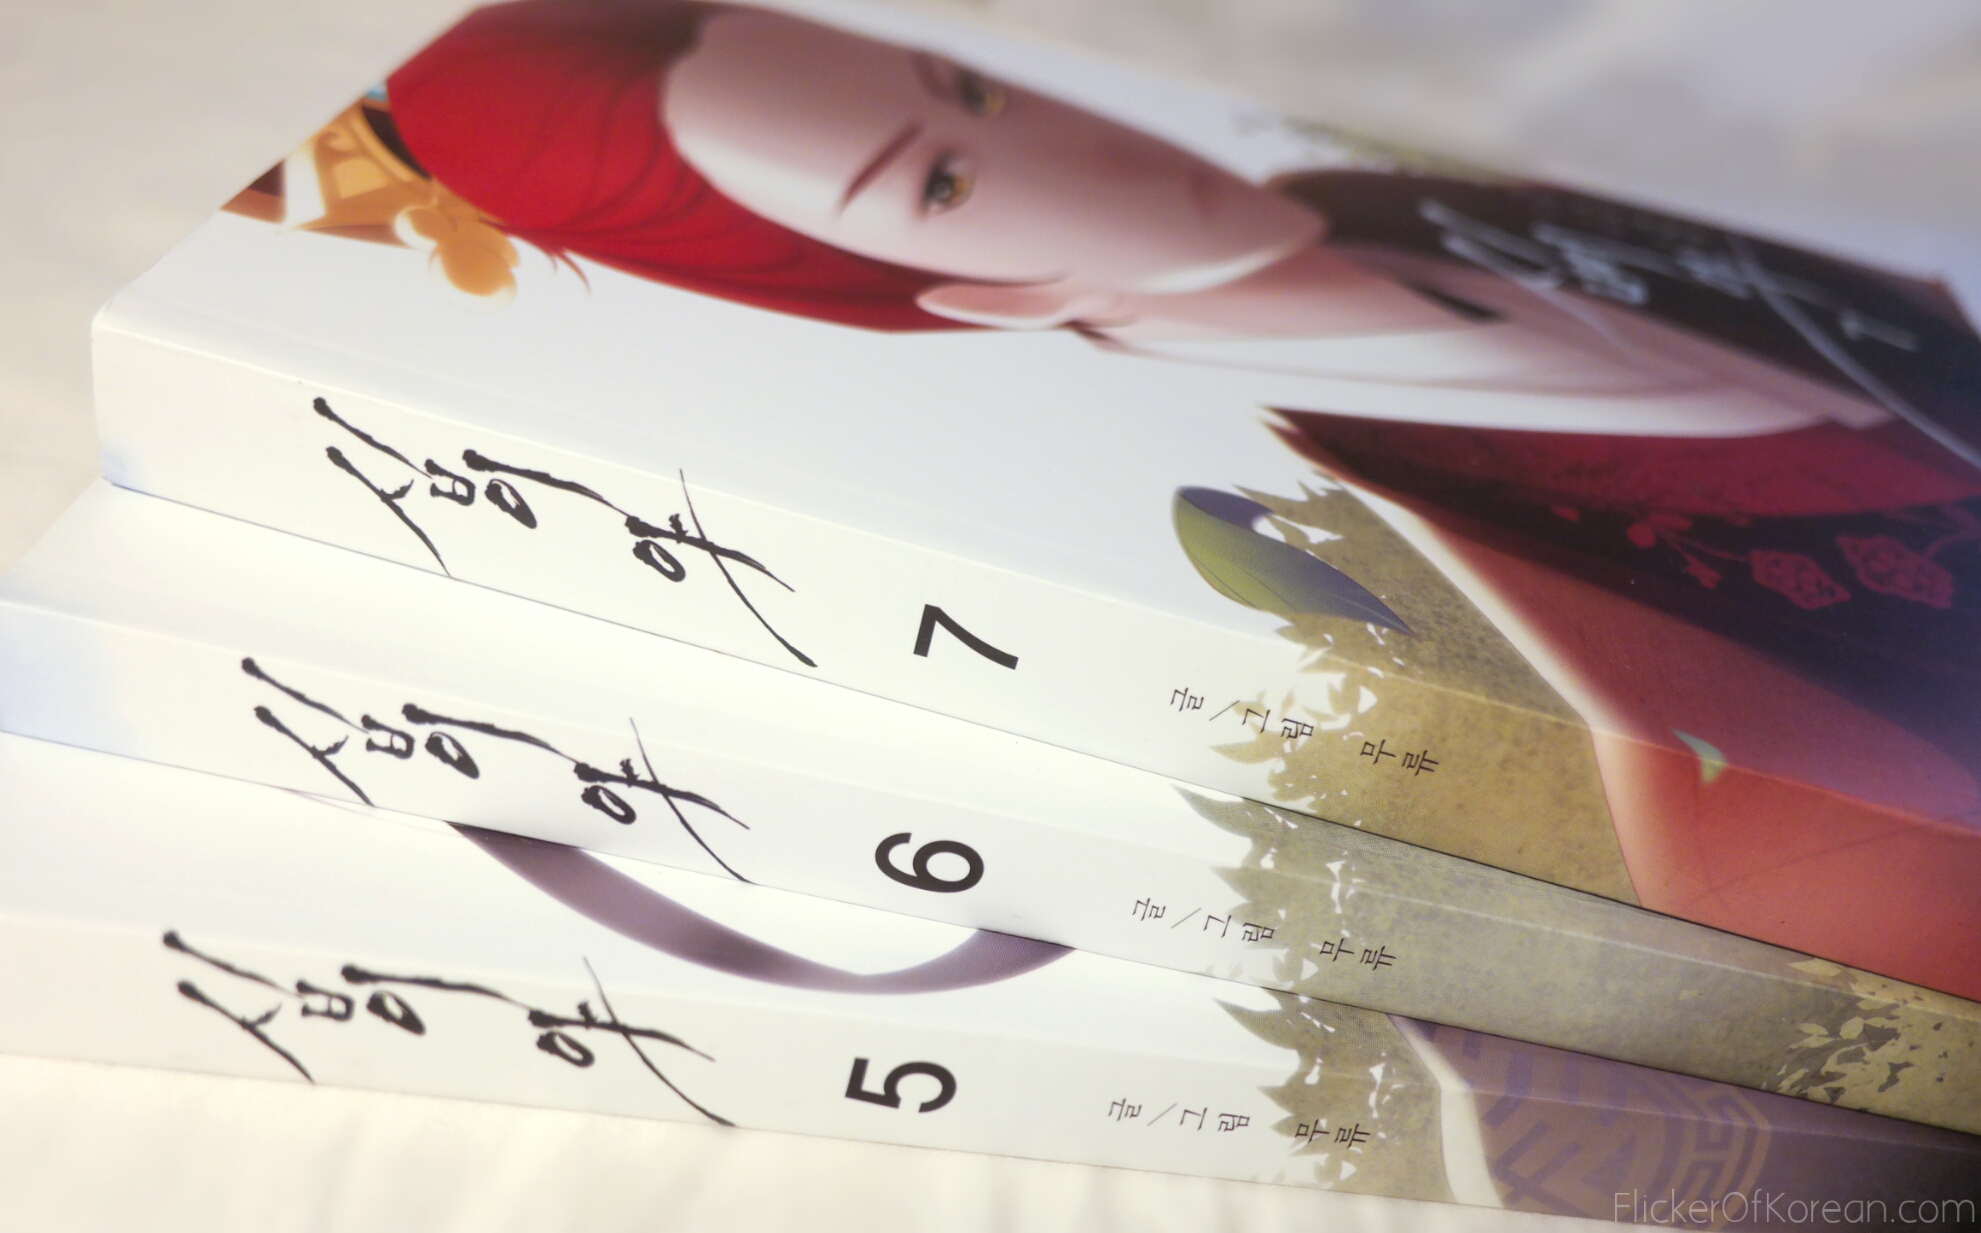 Twelfth Night volumes 5, 6, and 7 printed book manhwa 십이야 5, 6, 7